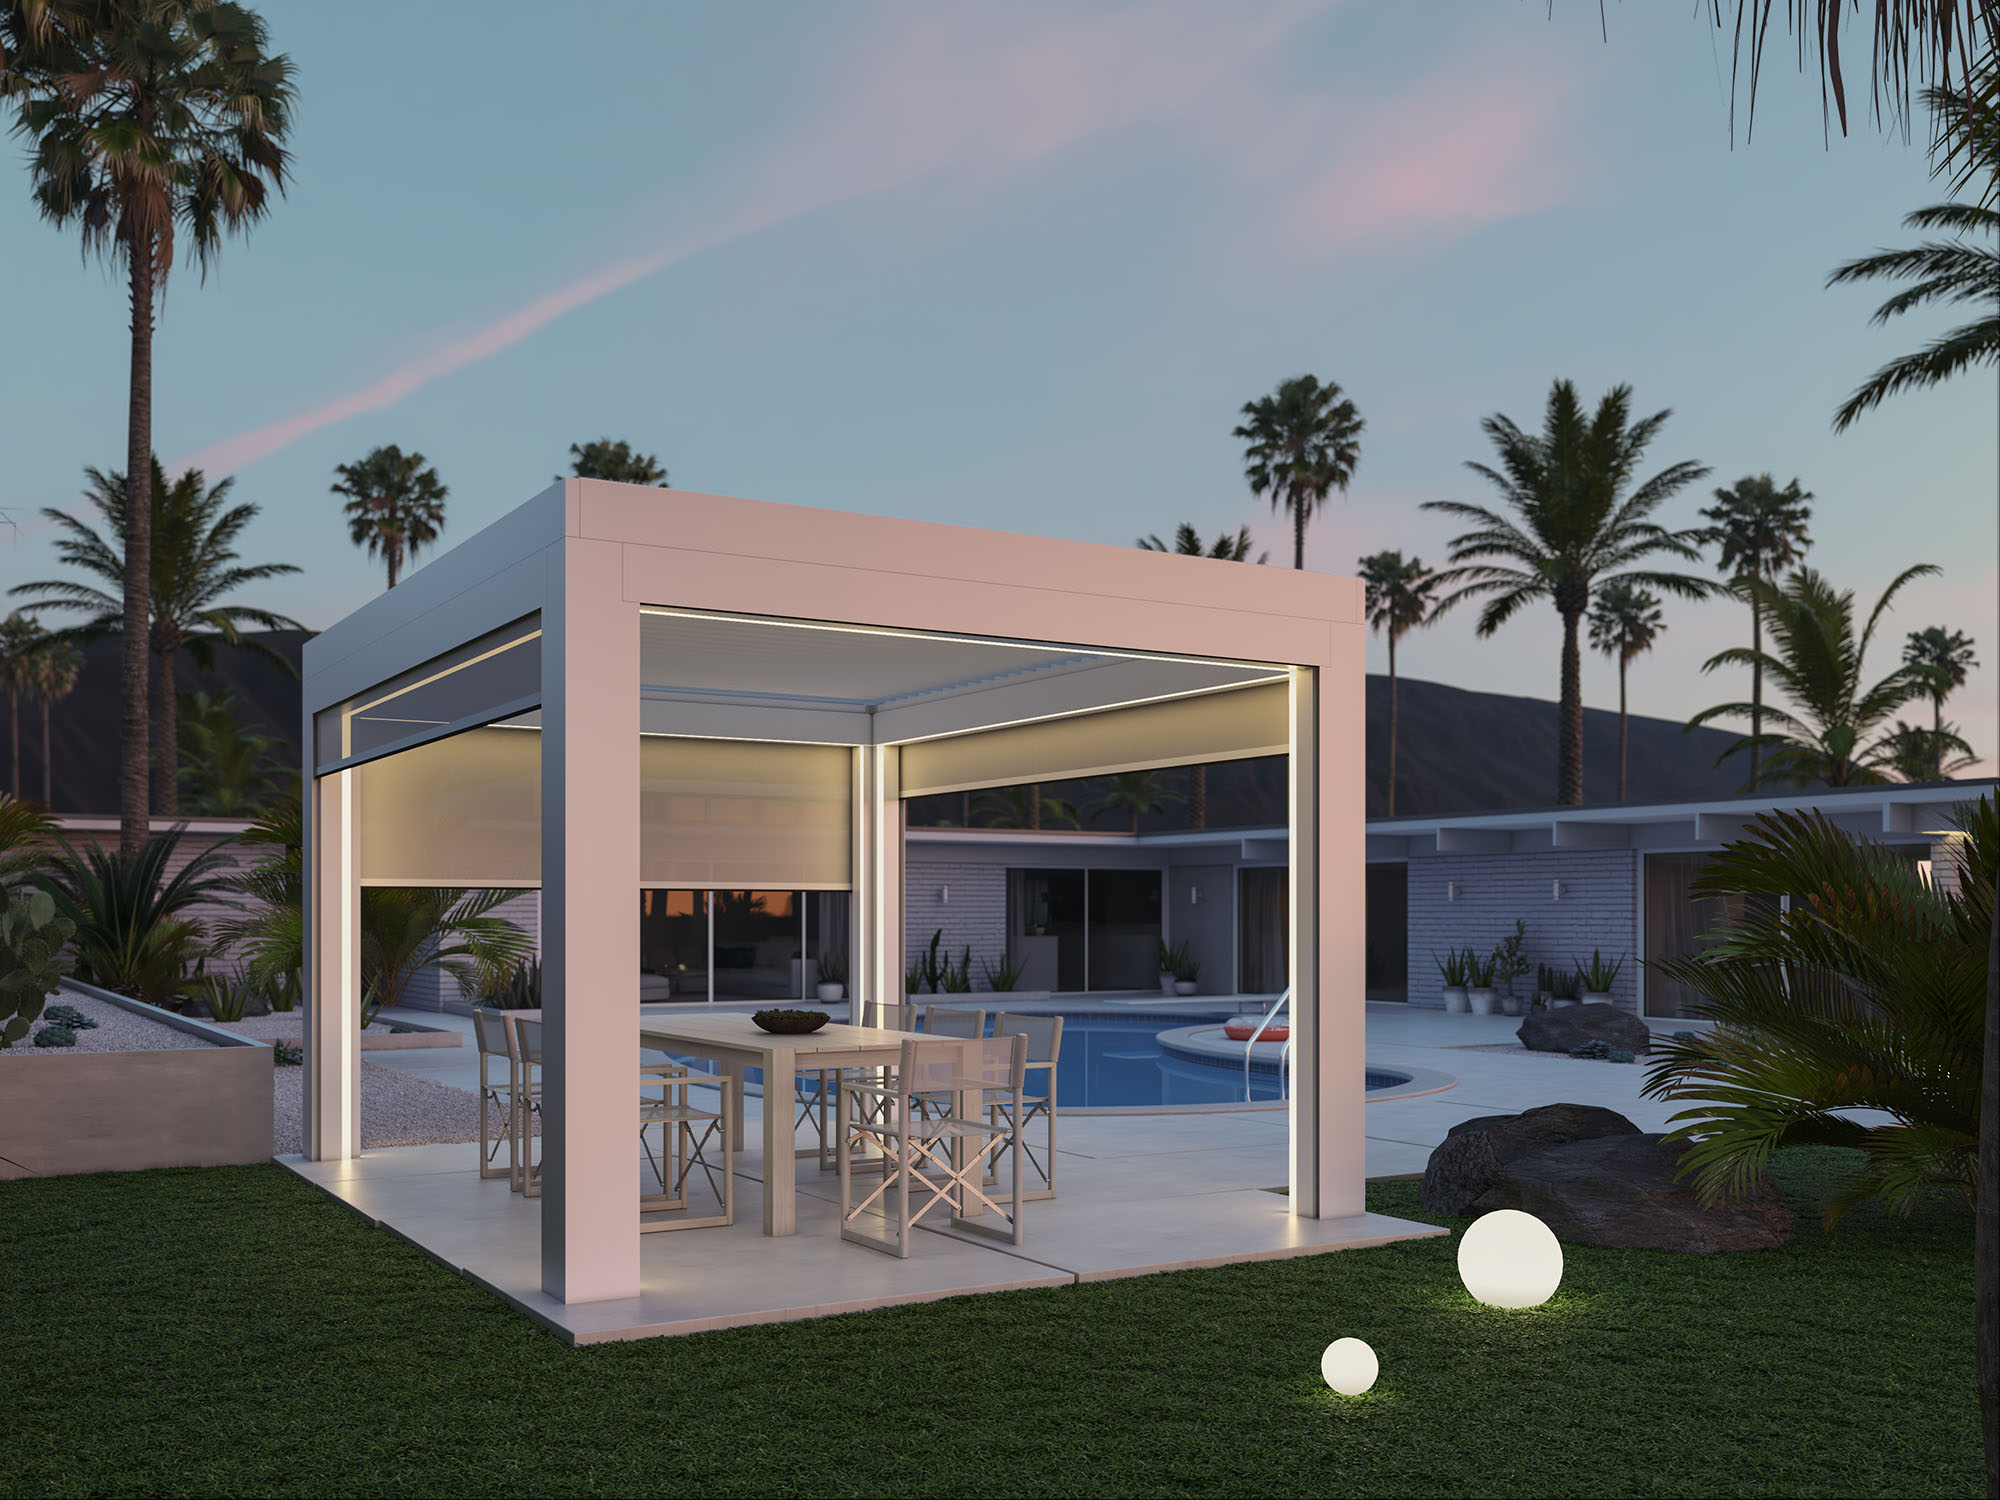 Free-standing white pergola with TraX lighting and screens over stone patio with dining table and glowing globe lights on grass